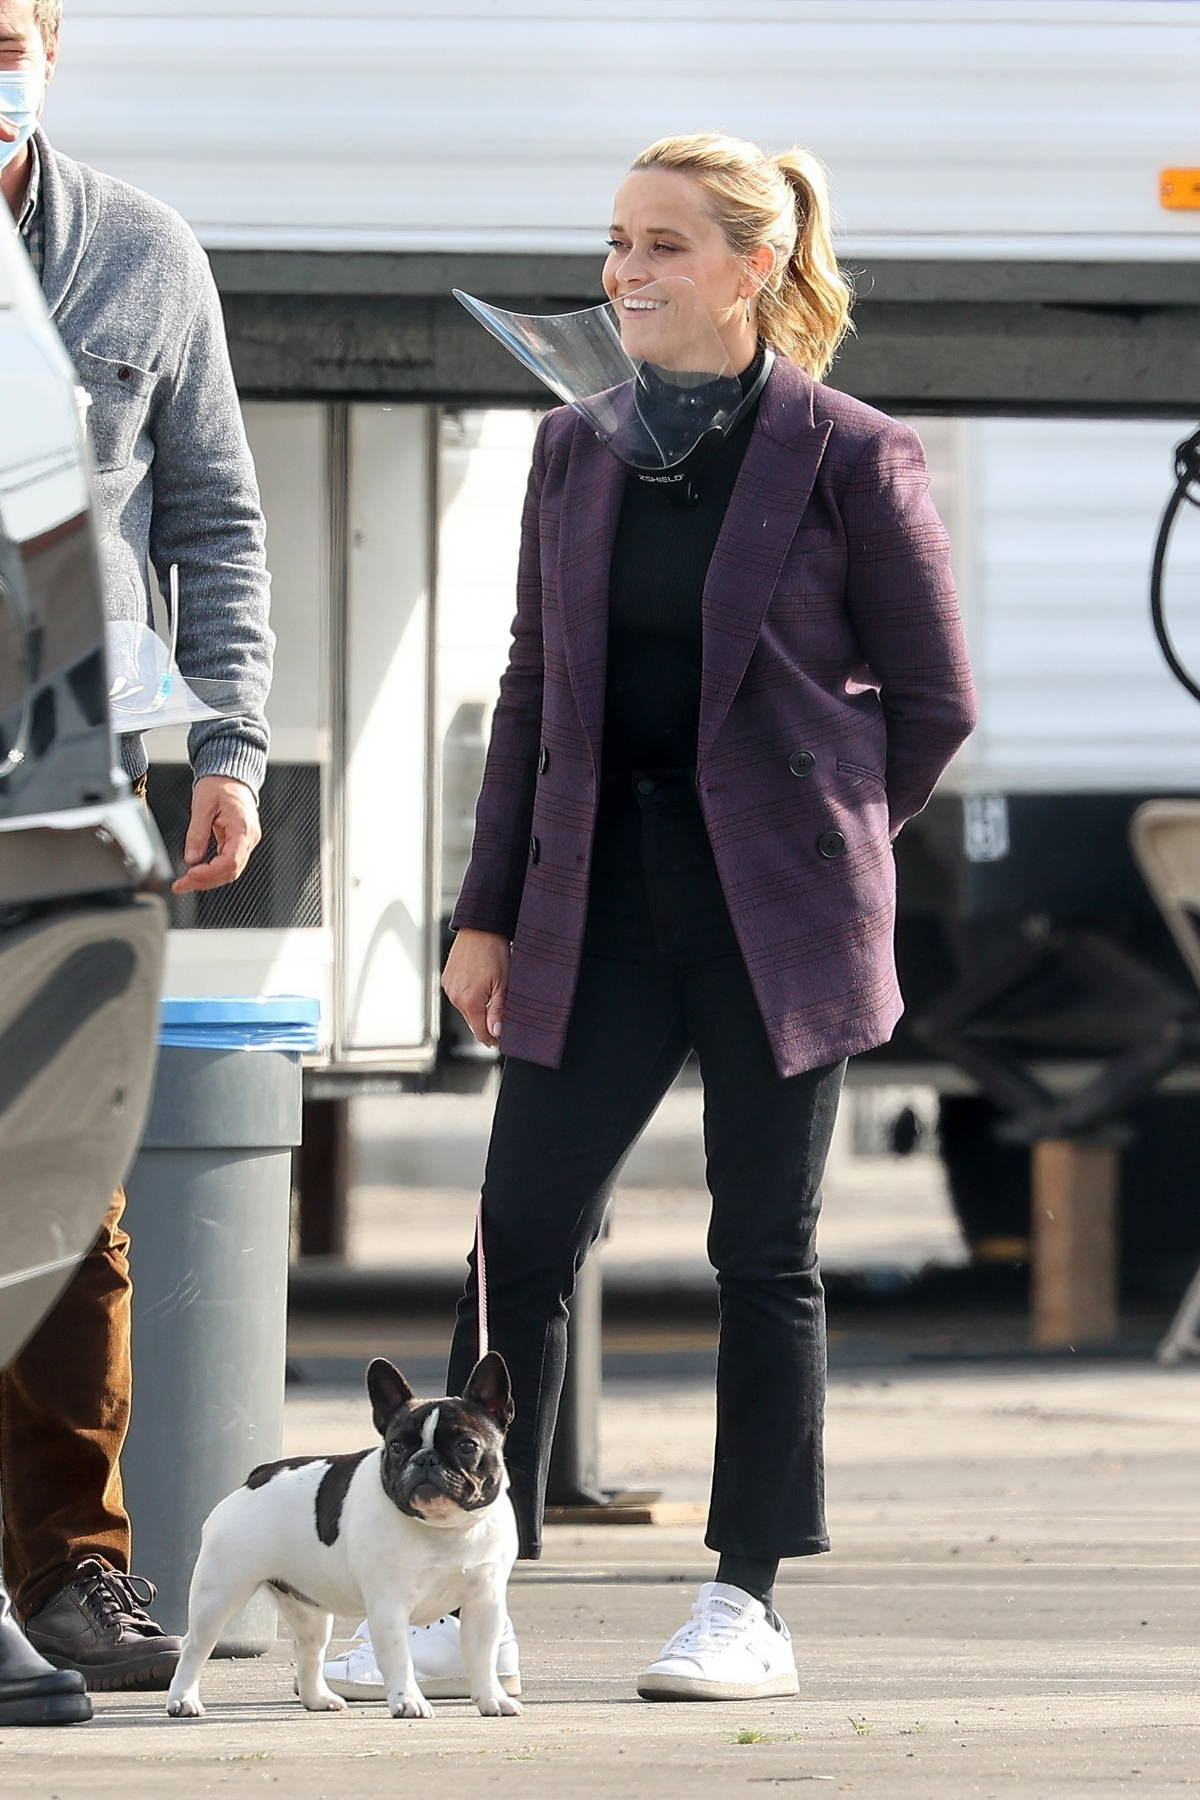 Reese Witherspoon brings her dog along to work on the set of 'The Morning Show' in Los Angeles